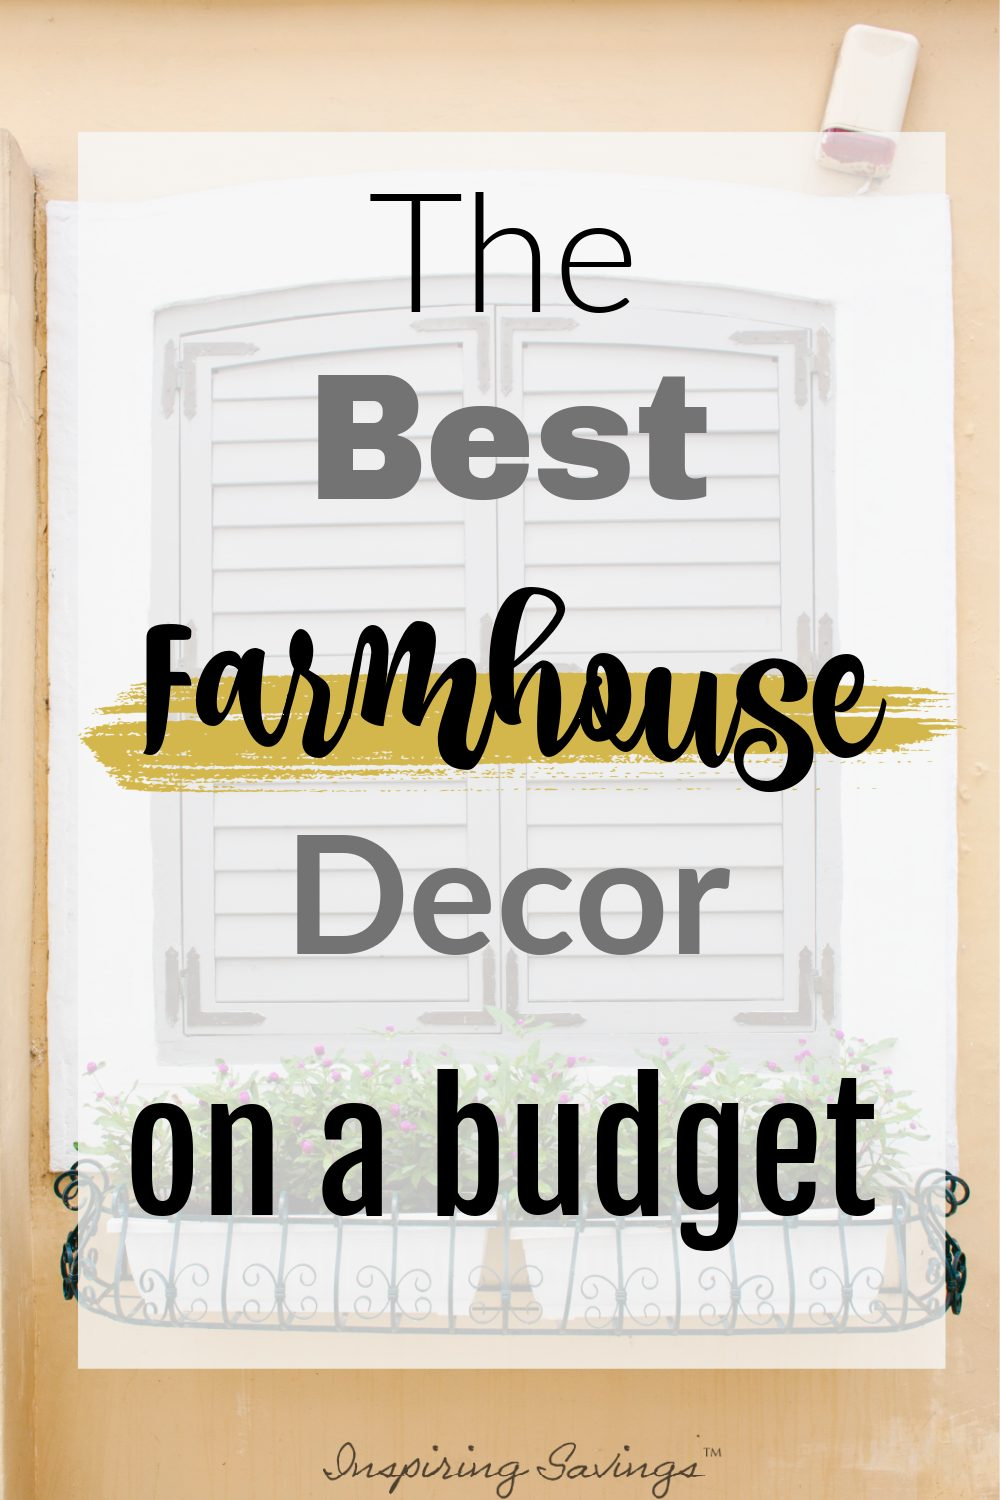 Outside window with window box, farmhouse decor on a budget